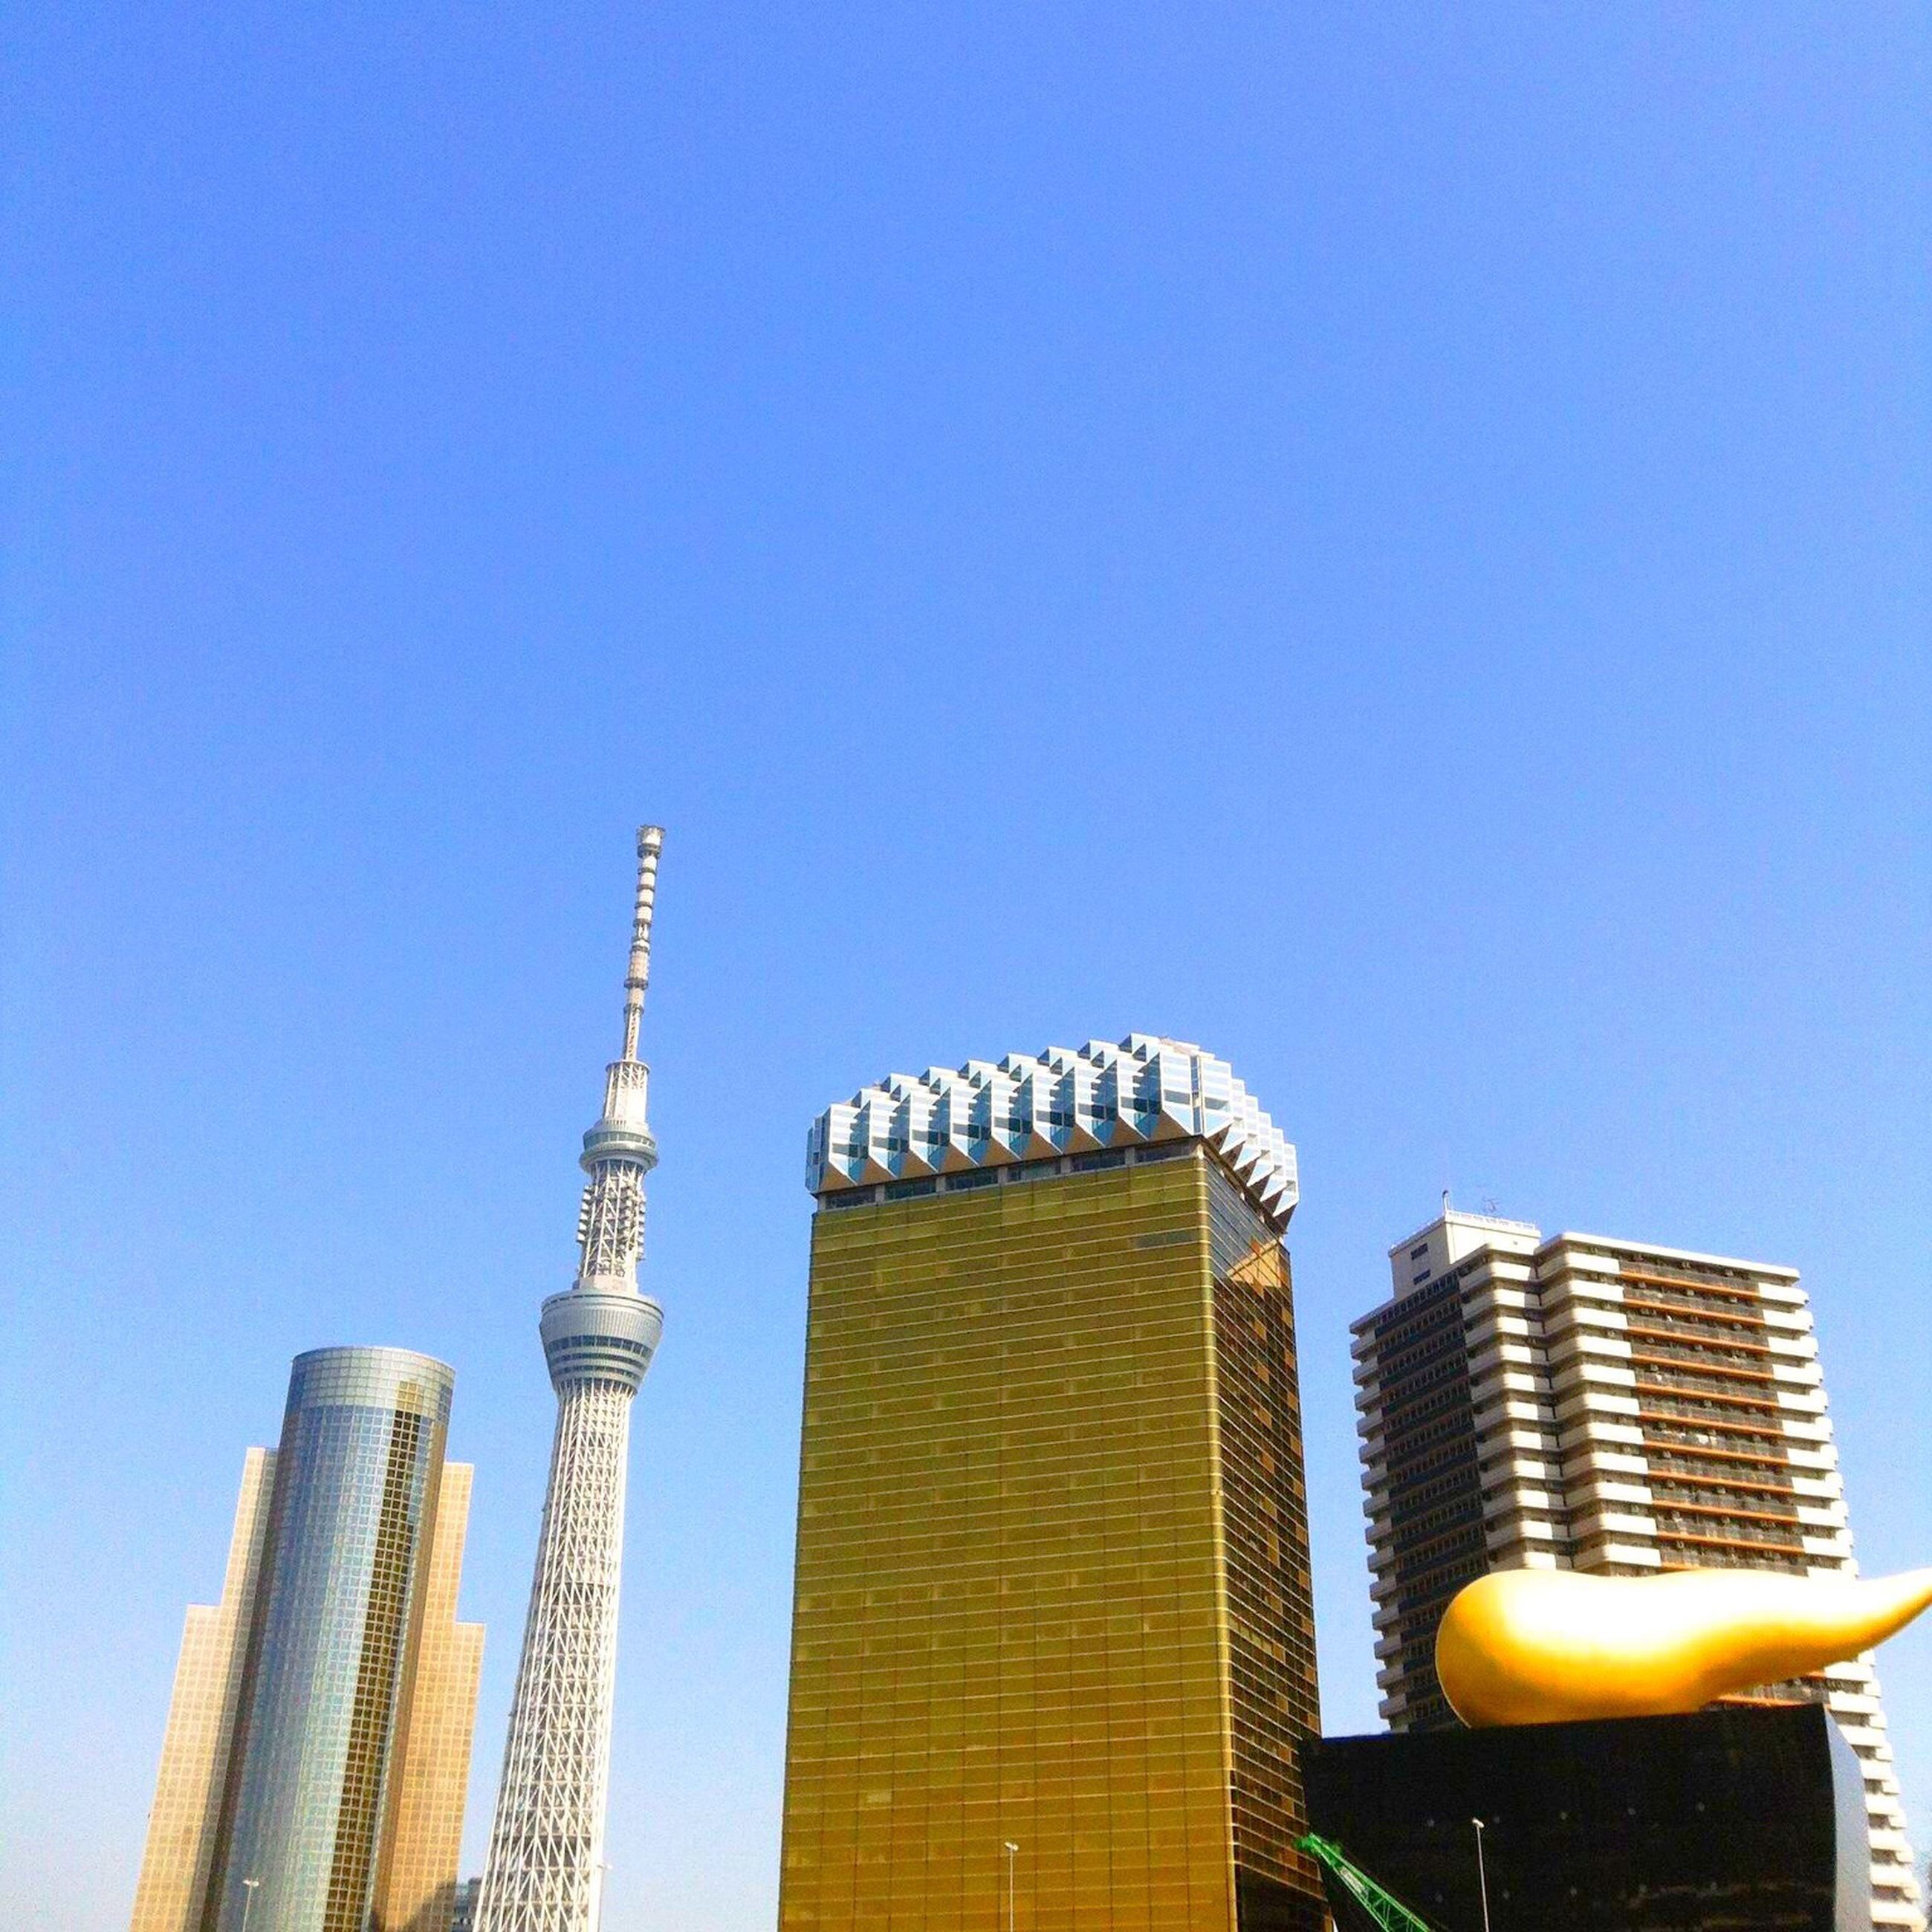 clear sky, architecture, built structure, building exterior, low angle view, copy space, blue, tall - high, tower, city, yellow, modern, skyscraper, famous place, travel destinations, outdoors, capital cities, no people, building, international landmark